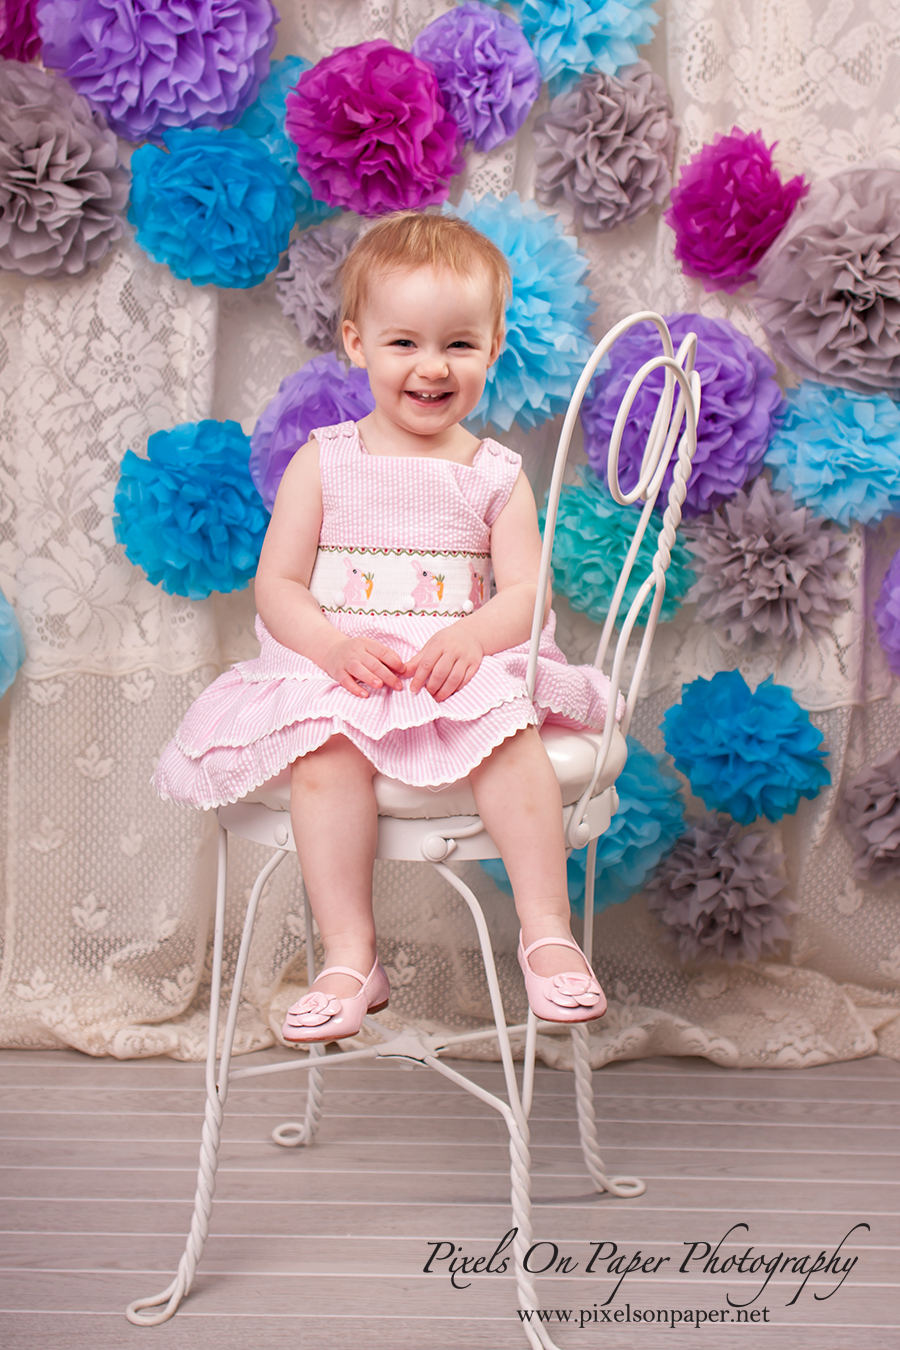 Amelia Minick Easter Studio Portrait Photographer Photo